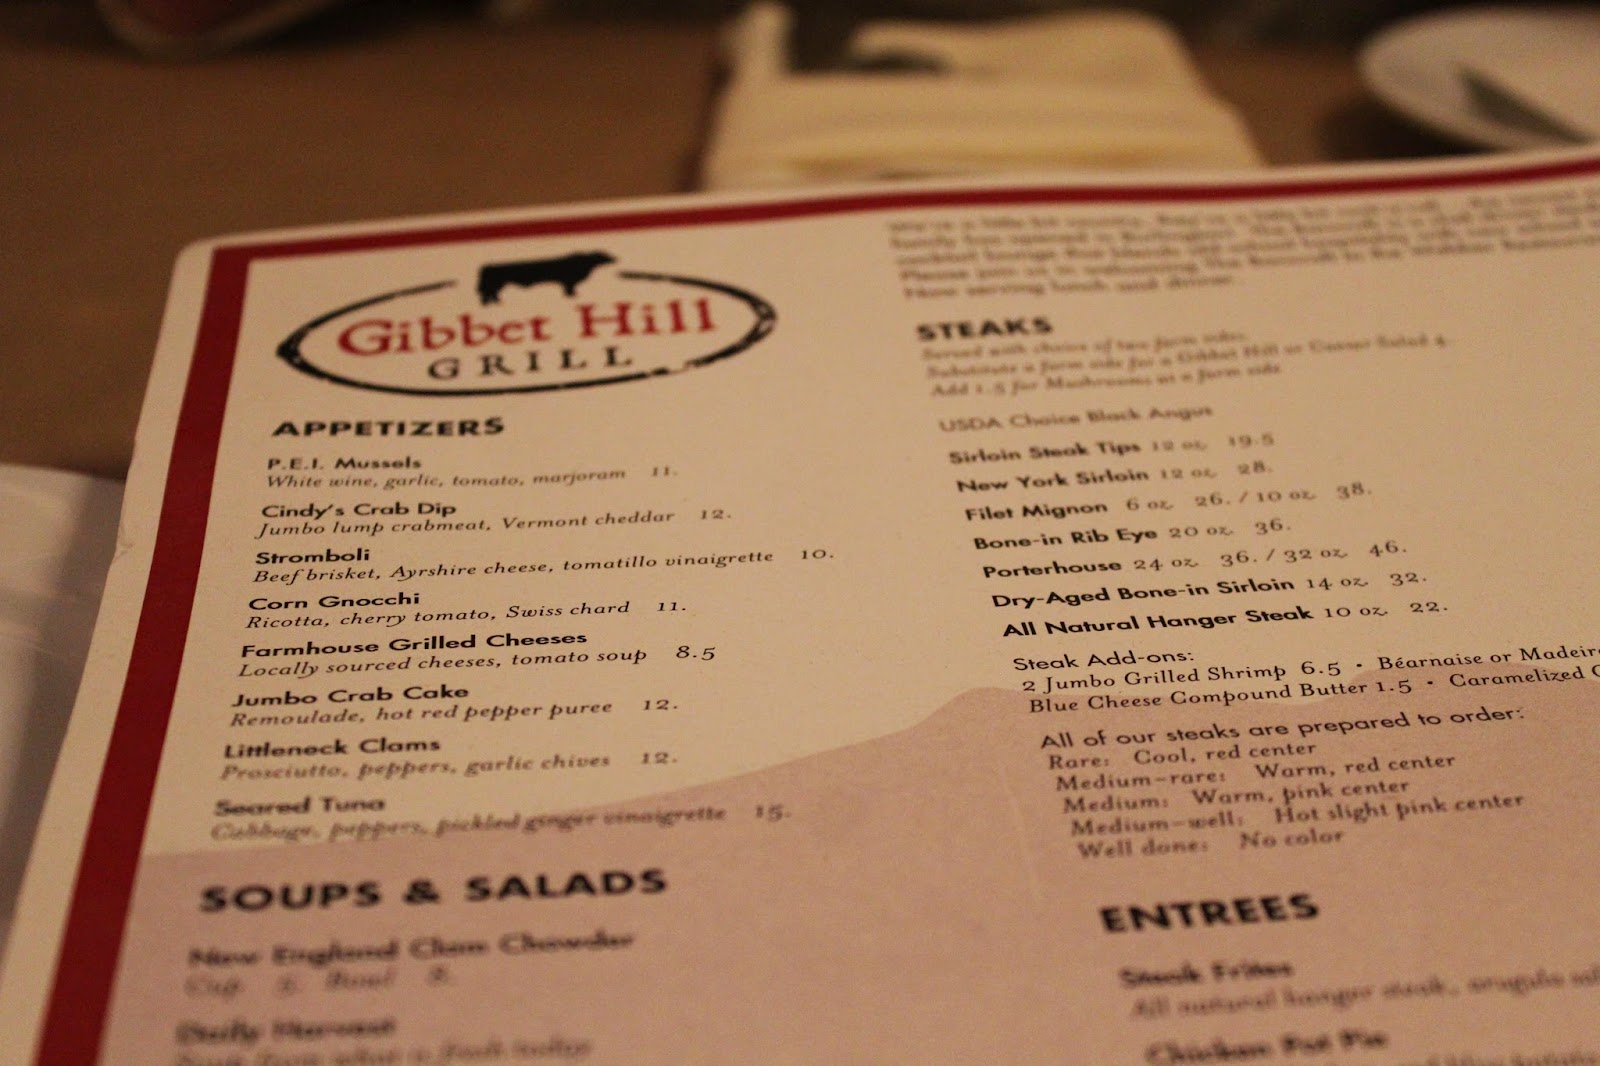 Menu at Gibbet Hill Grill, Groton, Mass.